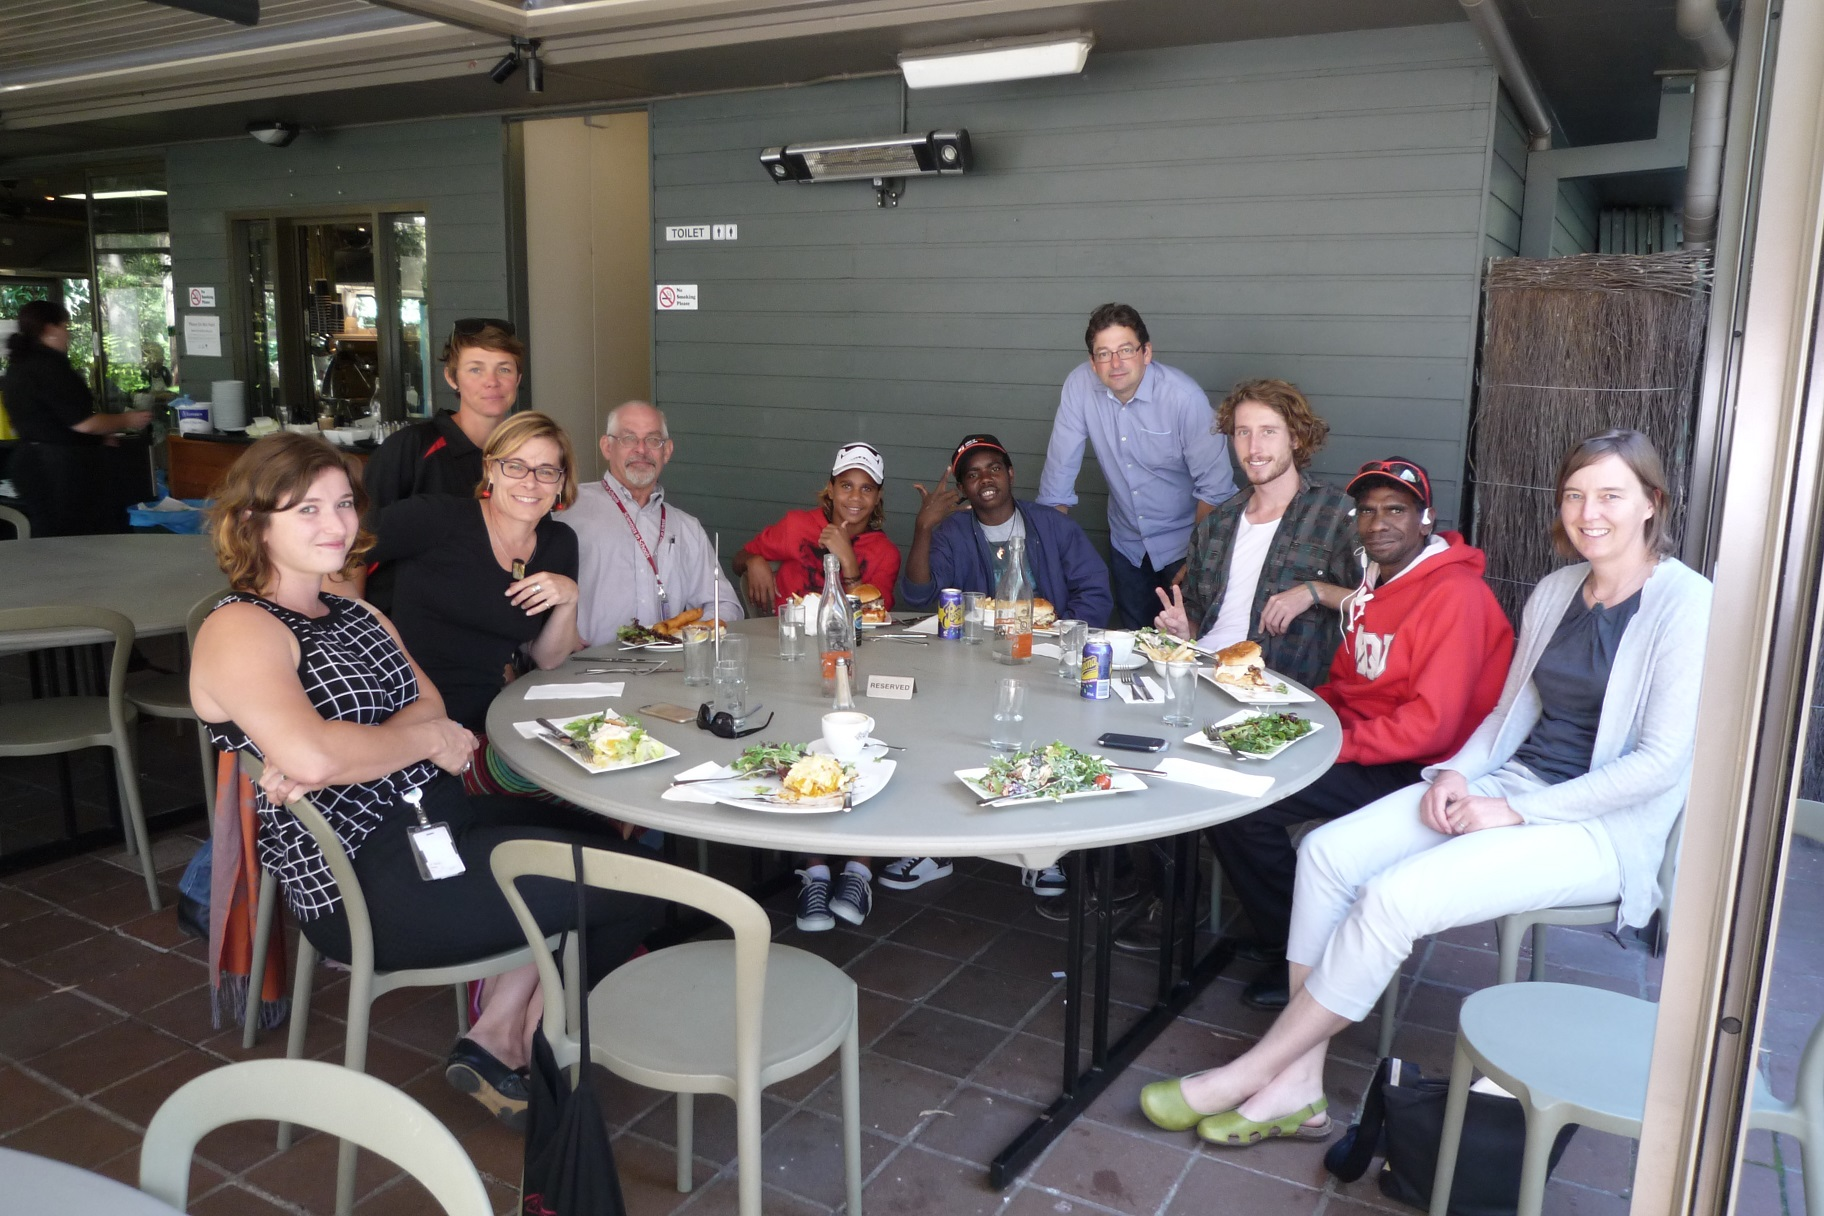 Having lunch with CSIRO's Atlas of Living Australia team: Minky Faber, Stephanie Vongavel, Emilie Ens, John La Salle, Nehemiah Farrell, Lester Gumbula, Peter Doughty, Mitchell Scott, Kelvin Rogers and Rebecca Pirzl, at the Australian National Botanic Gardens, Canberra